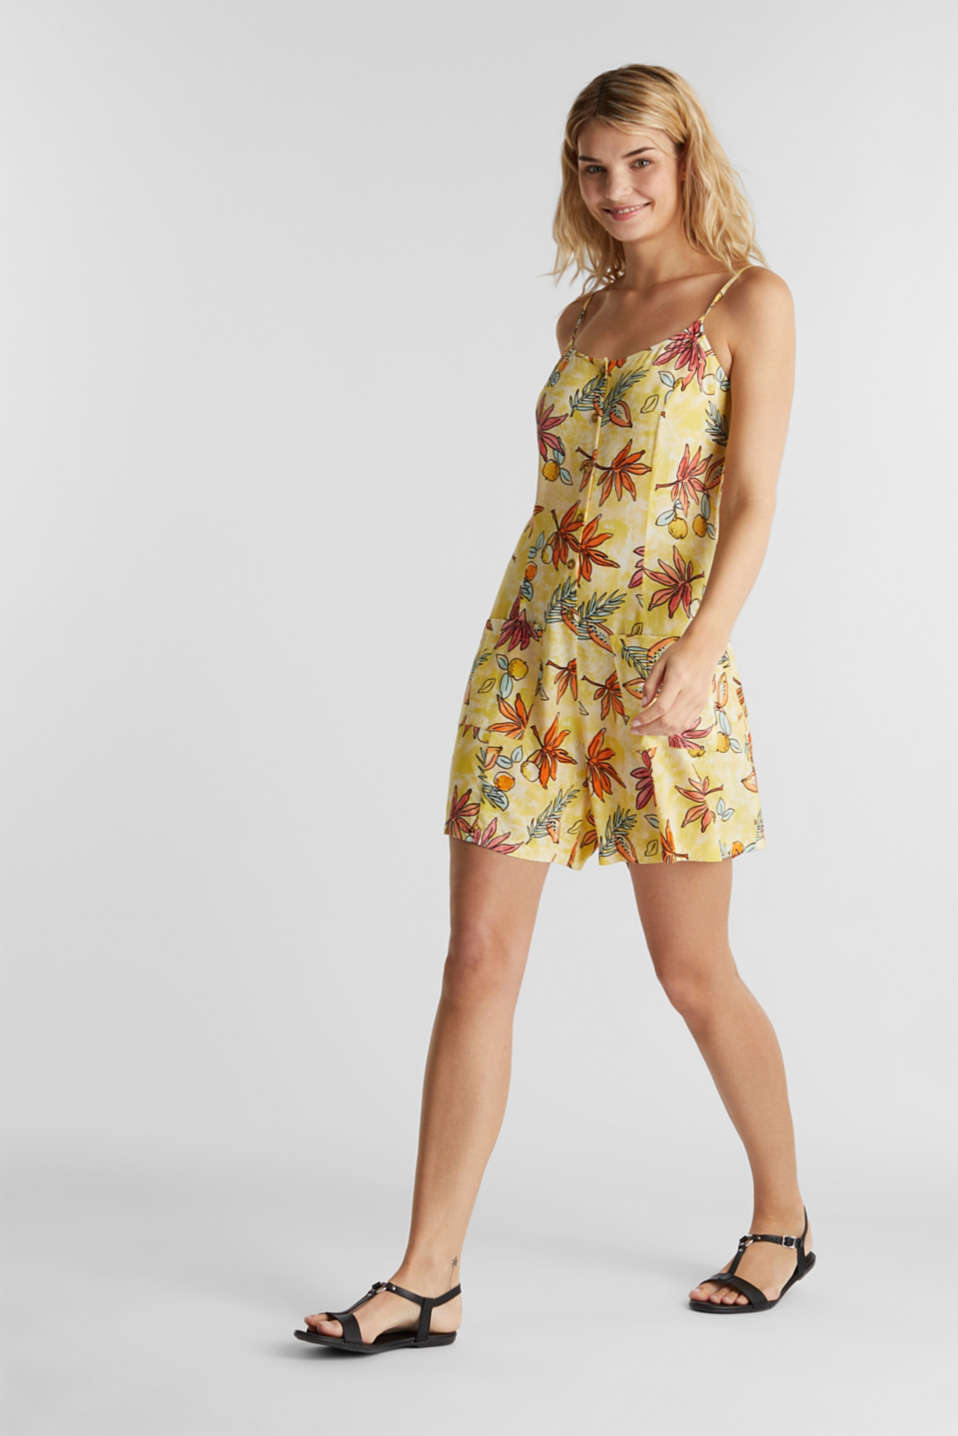 Woven playsuit with a fruit print, BRIGHT YELLOW 4, detail image number 1